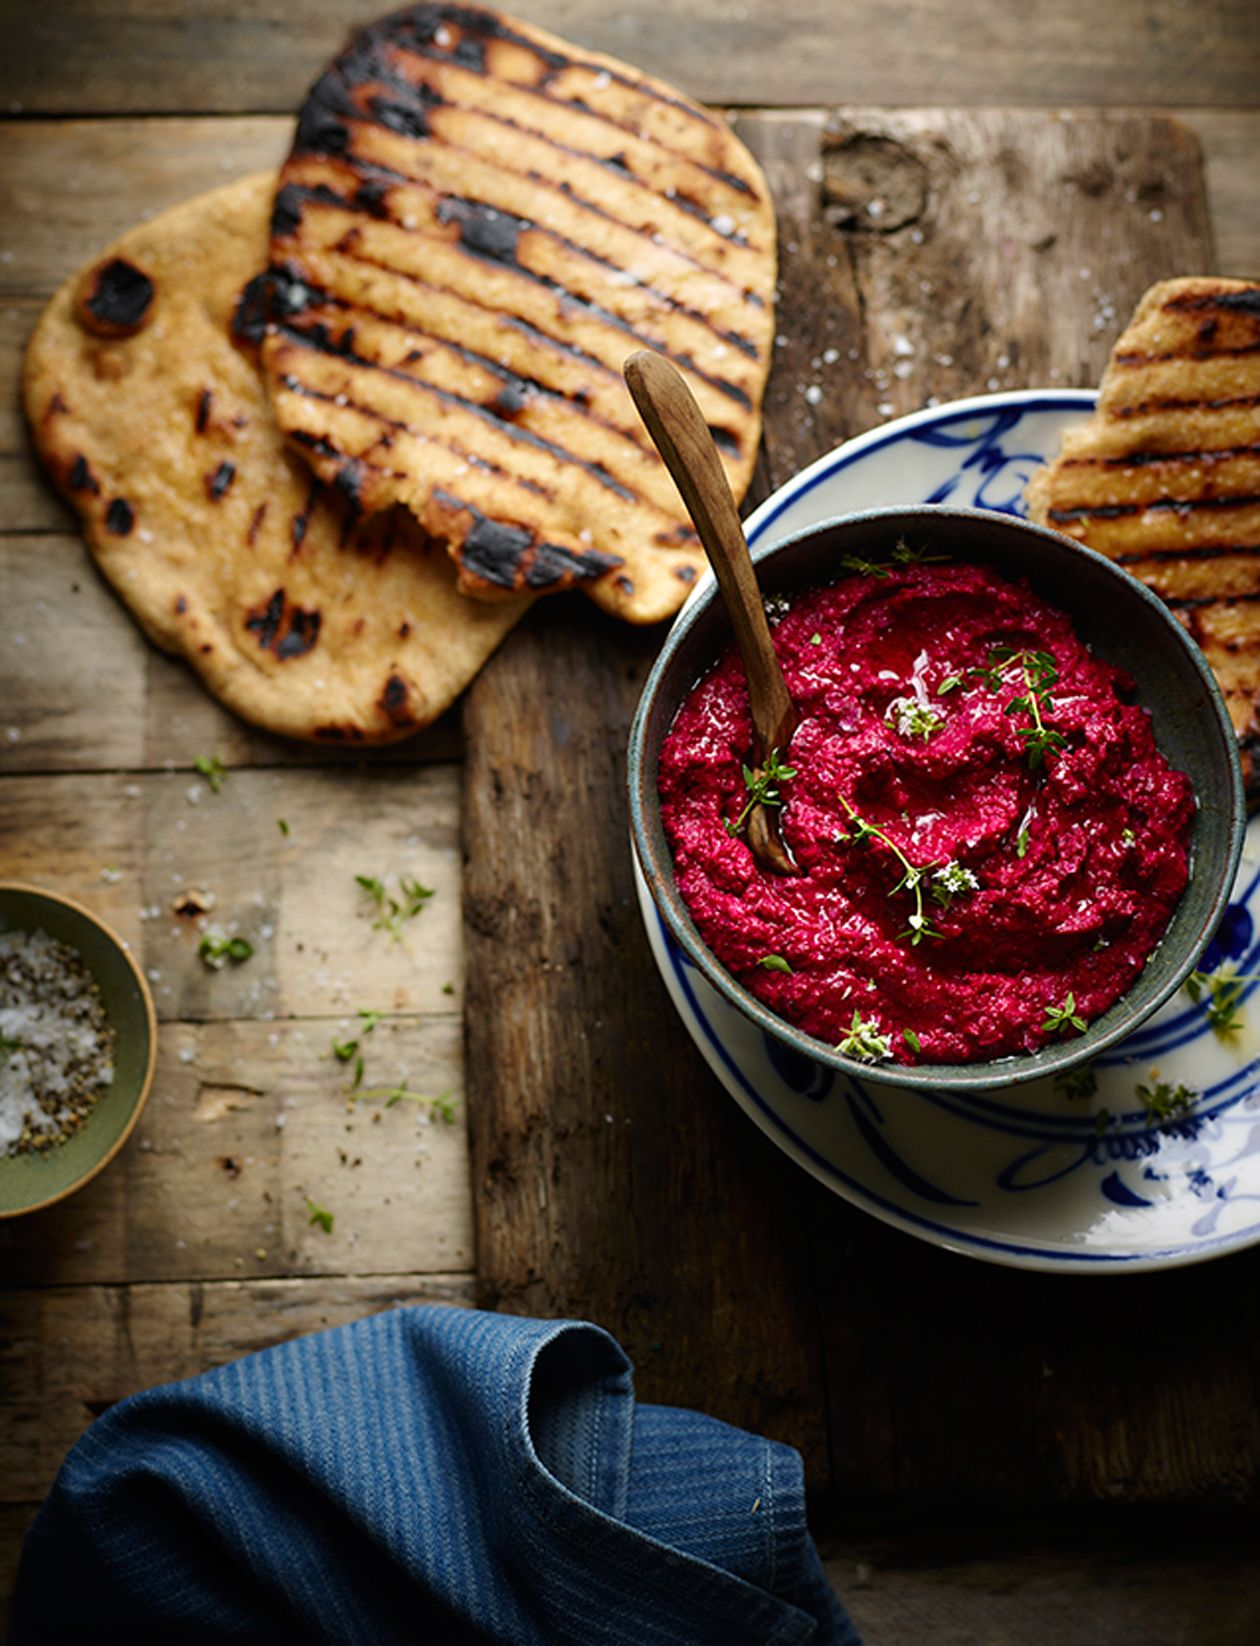 Salt Baked Beetroot Houmous With Spelt Flat Breads Recipe Baked Beetroot Food Beetroot